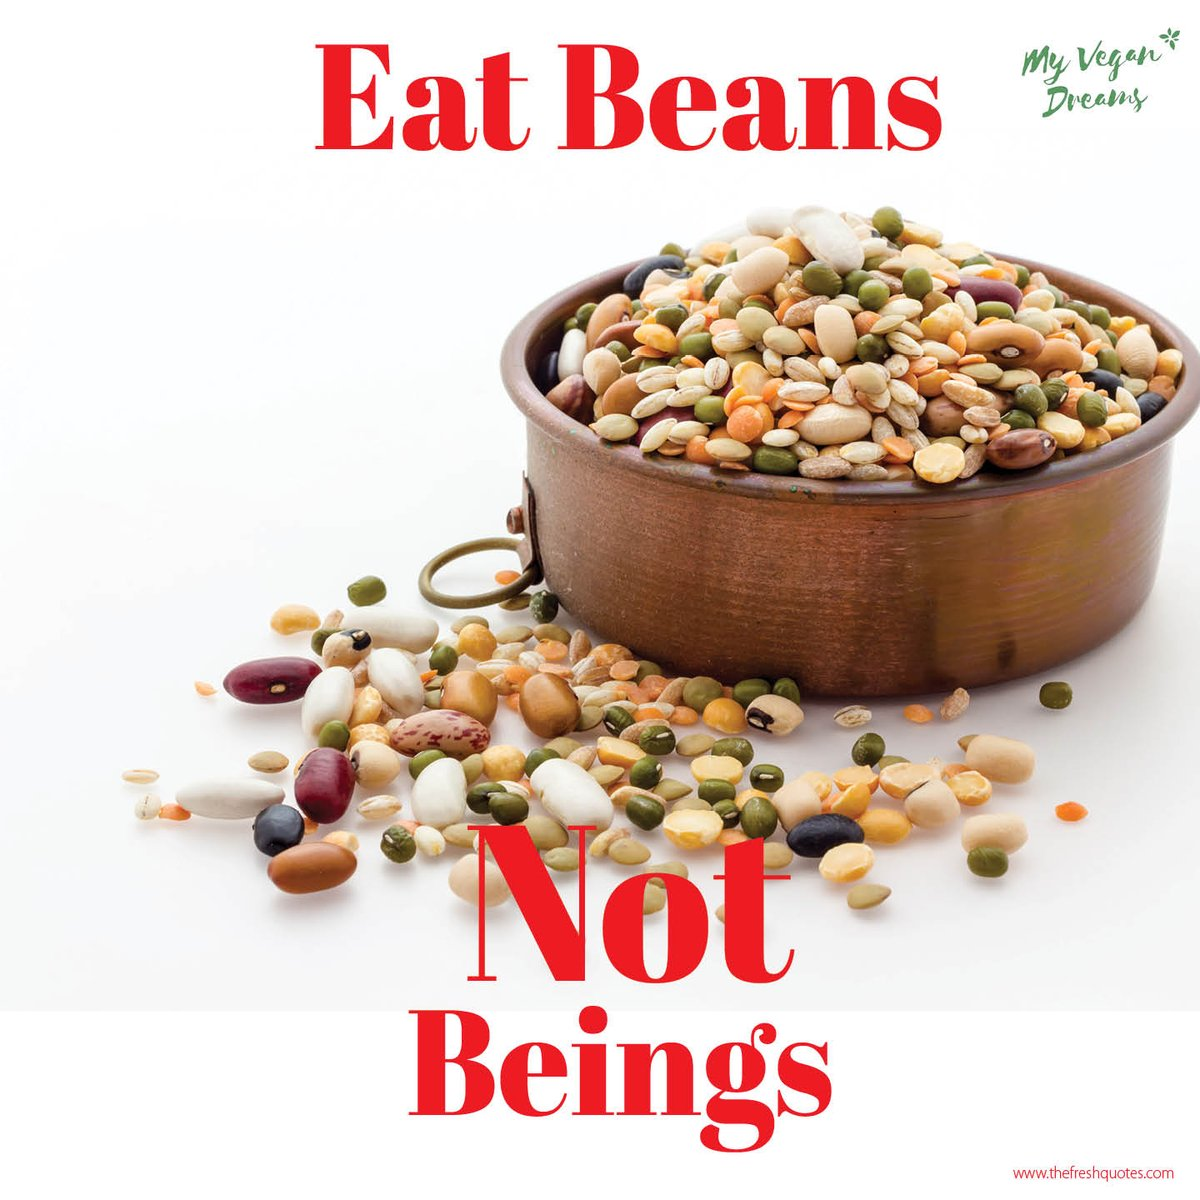 Eat beans, not beings! #vegan <br>http://pic.twitter.com/0C2TgffmzL